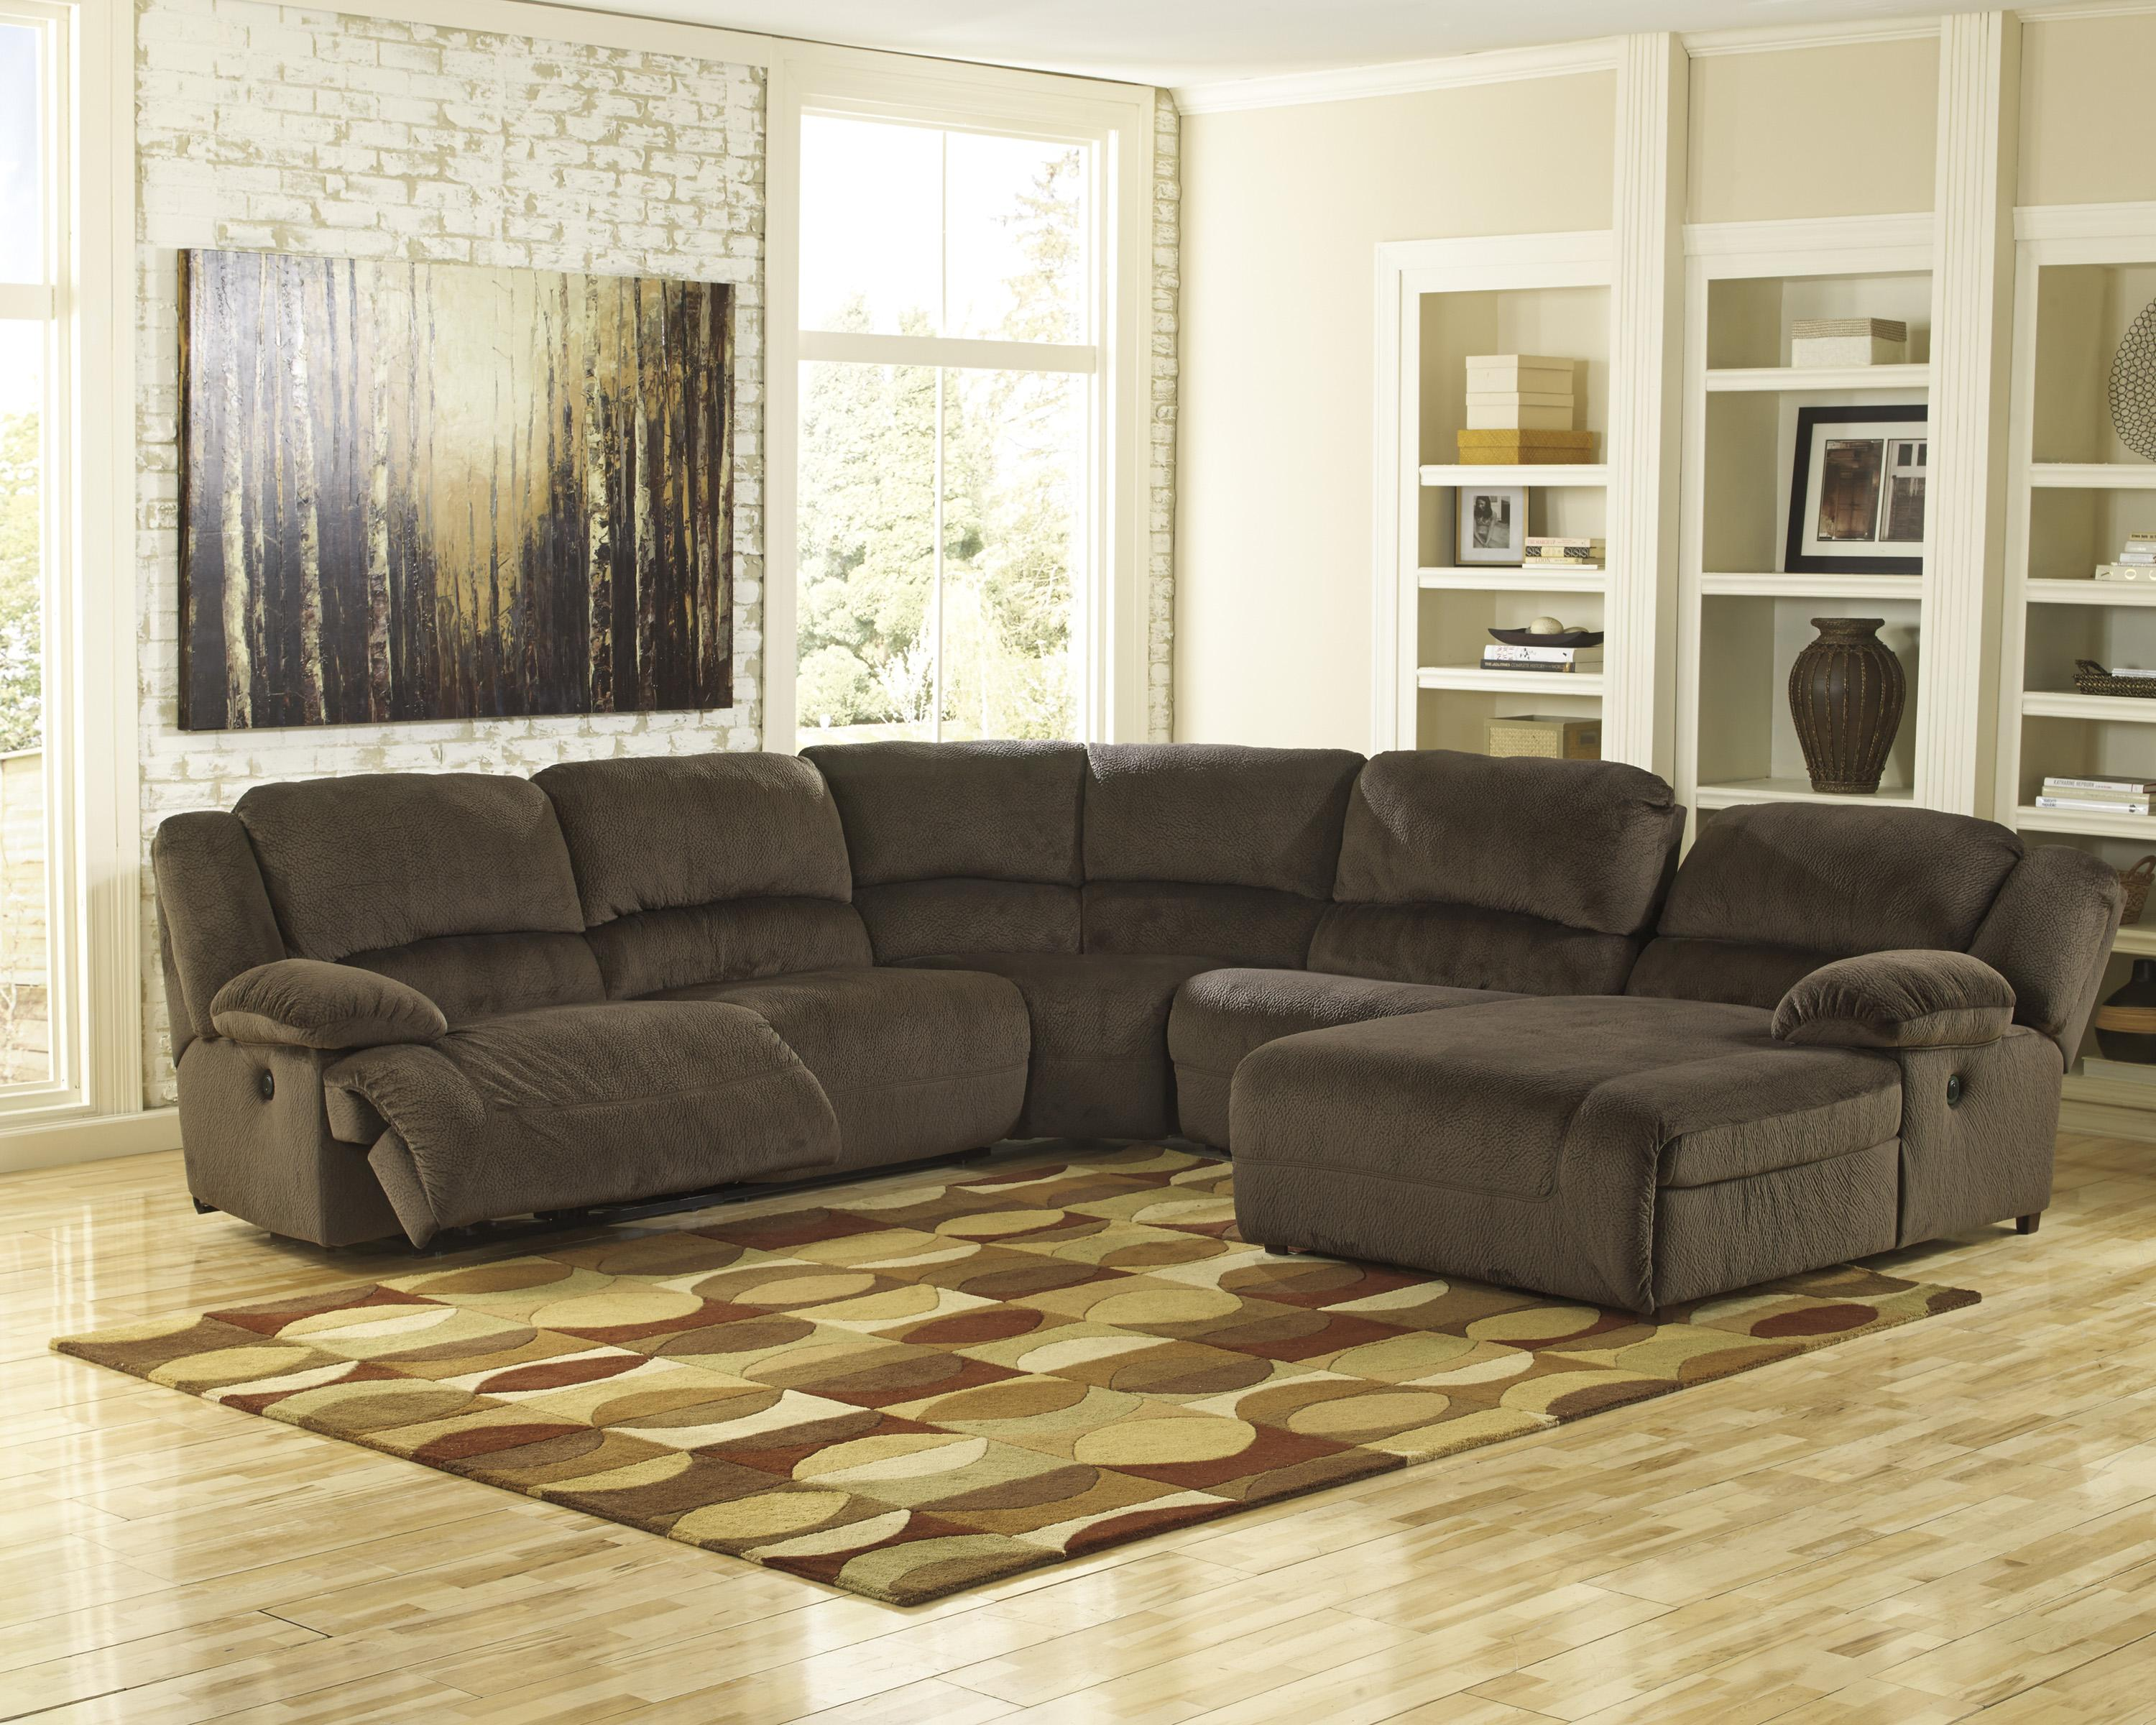 Power reclining sectional with right press back chaise by for Ashley sofa chaise